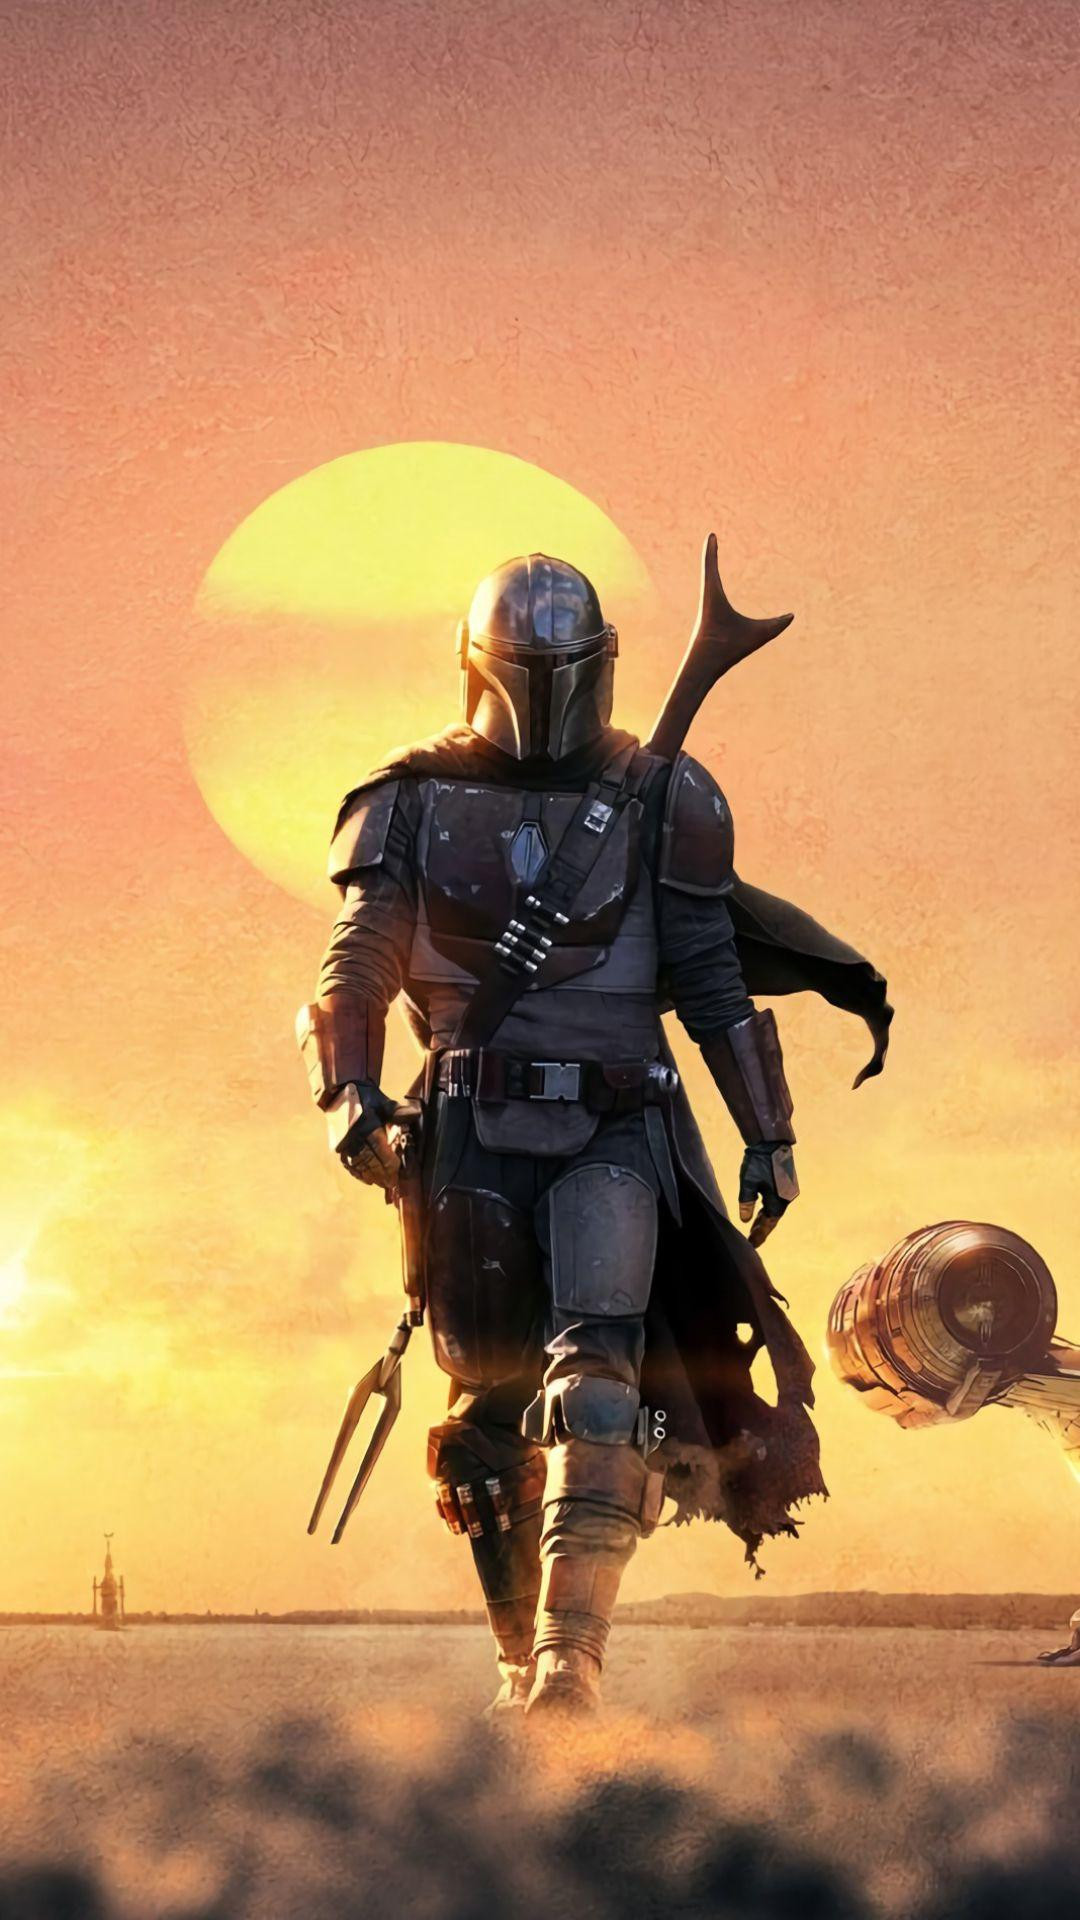 Who is this : Star Wars The Mandalorian